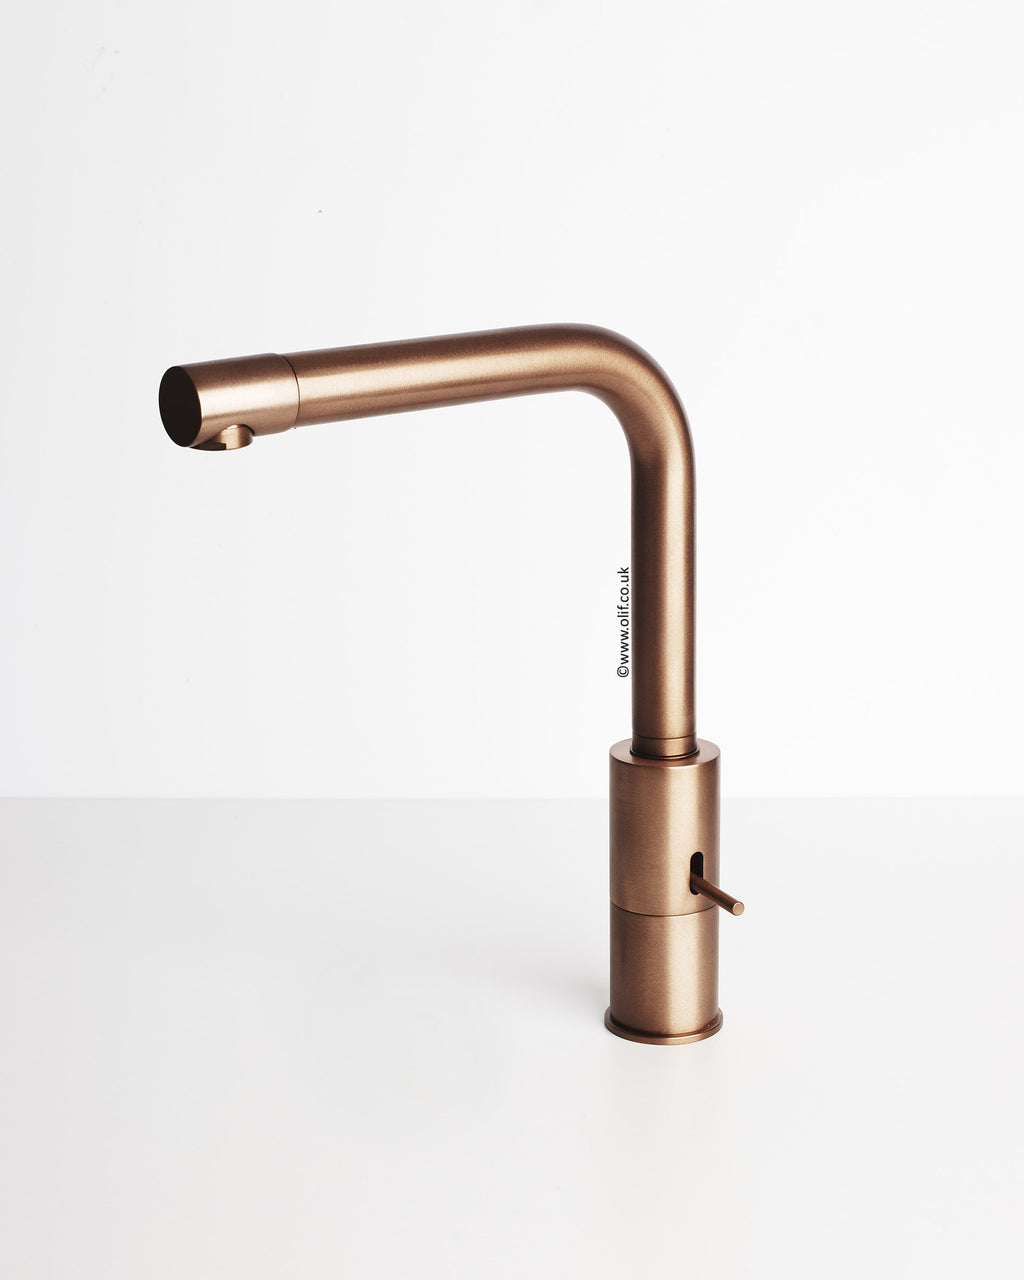 Splendido Brushed Copper, kitchen mixer tap